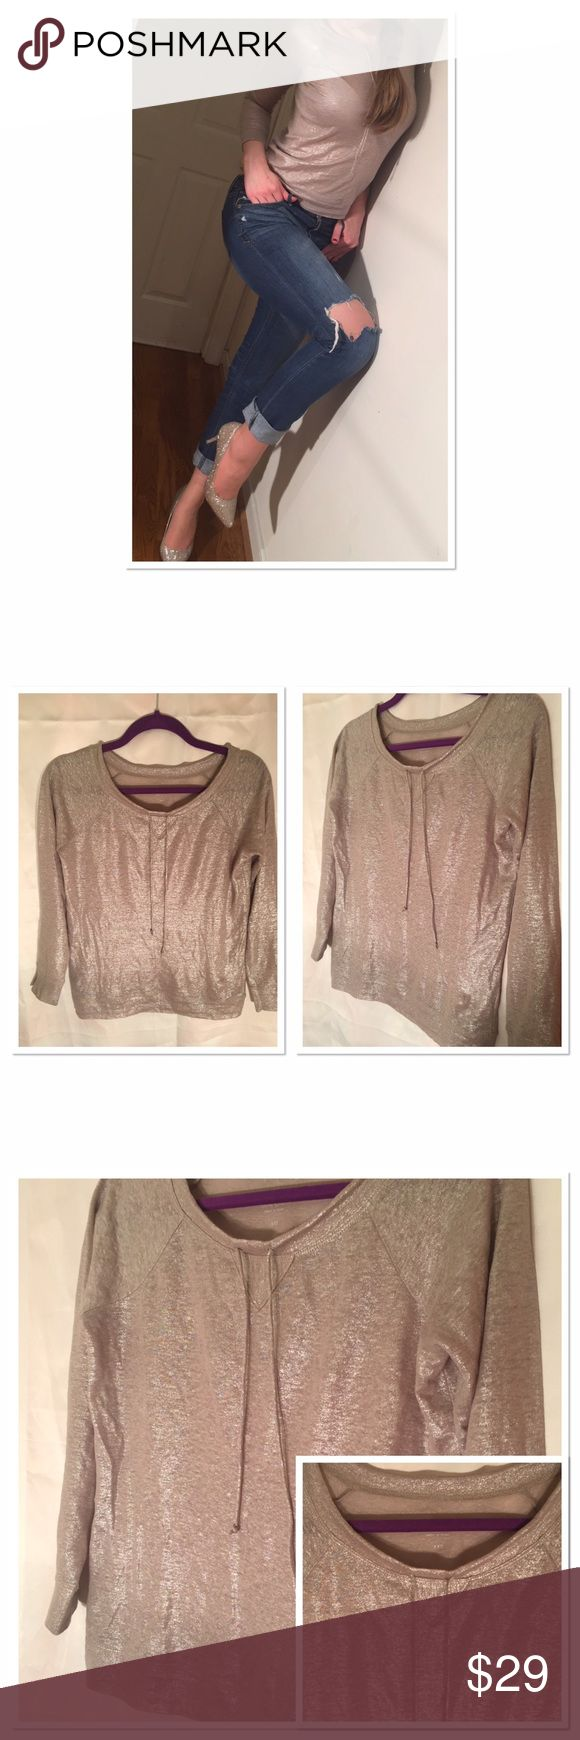 Metallic 100% linen long sleeve J. Crew casual top Casual parties, outings with friends you name it! This top can be dressed up or down. Wonderful J. Crew quality metallic shine breathable material. Drawstring collar. Comfortable fit for size S- label XSS. Worn once, excellent condition. Bring a little sparkle to everyday's life! J. Crew Tops Tees - Long Sleeve